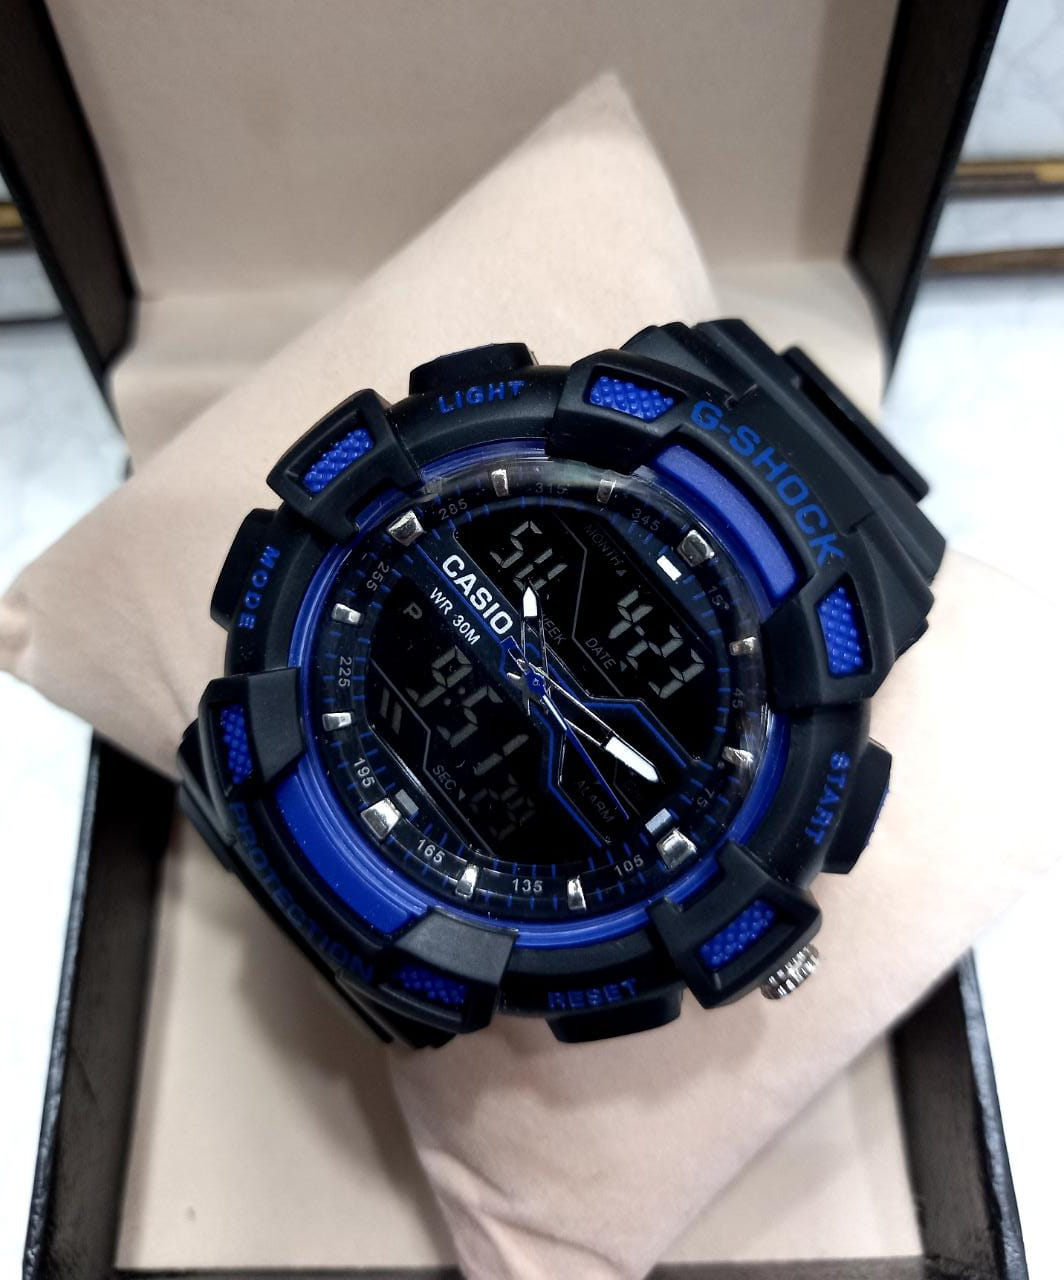 Imported Original G-SHOCK,Waterproof Multi-Function Digital Chronograph Duel Display, Dual time, light,Week, Date ,Alarm, Stylish, Fashion, Sports Watch For Mens